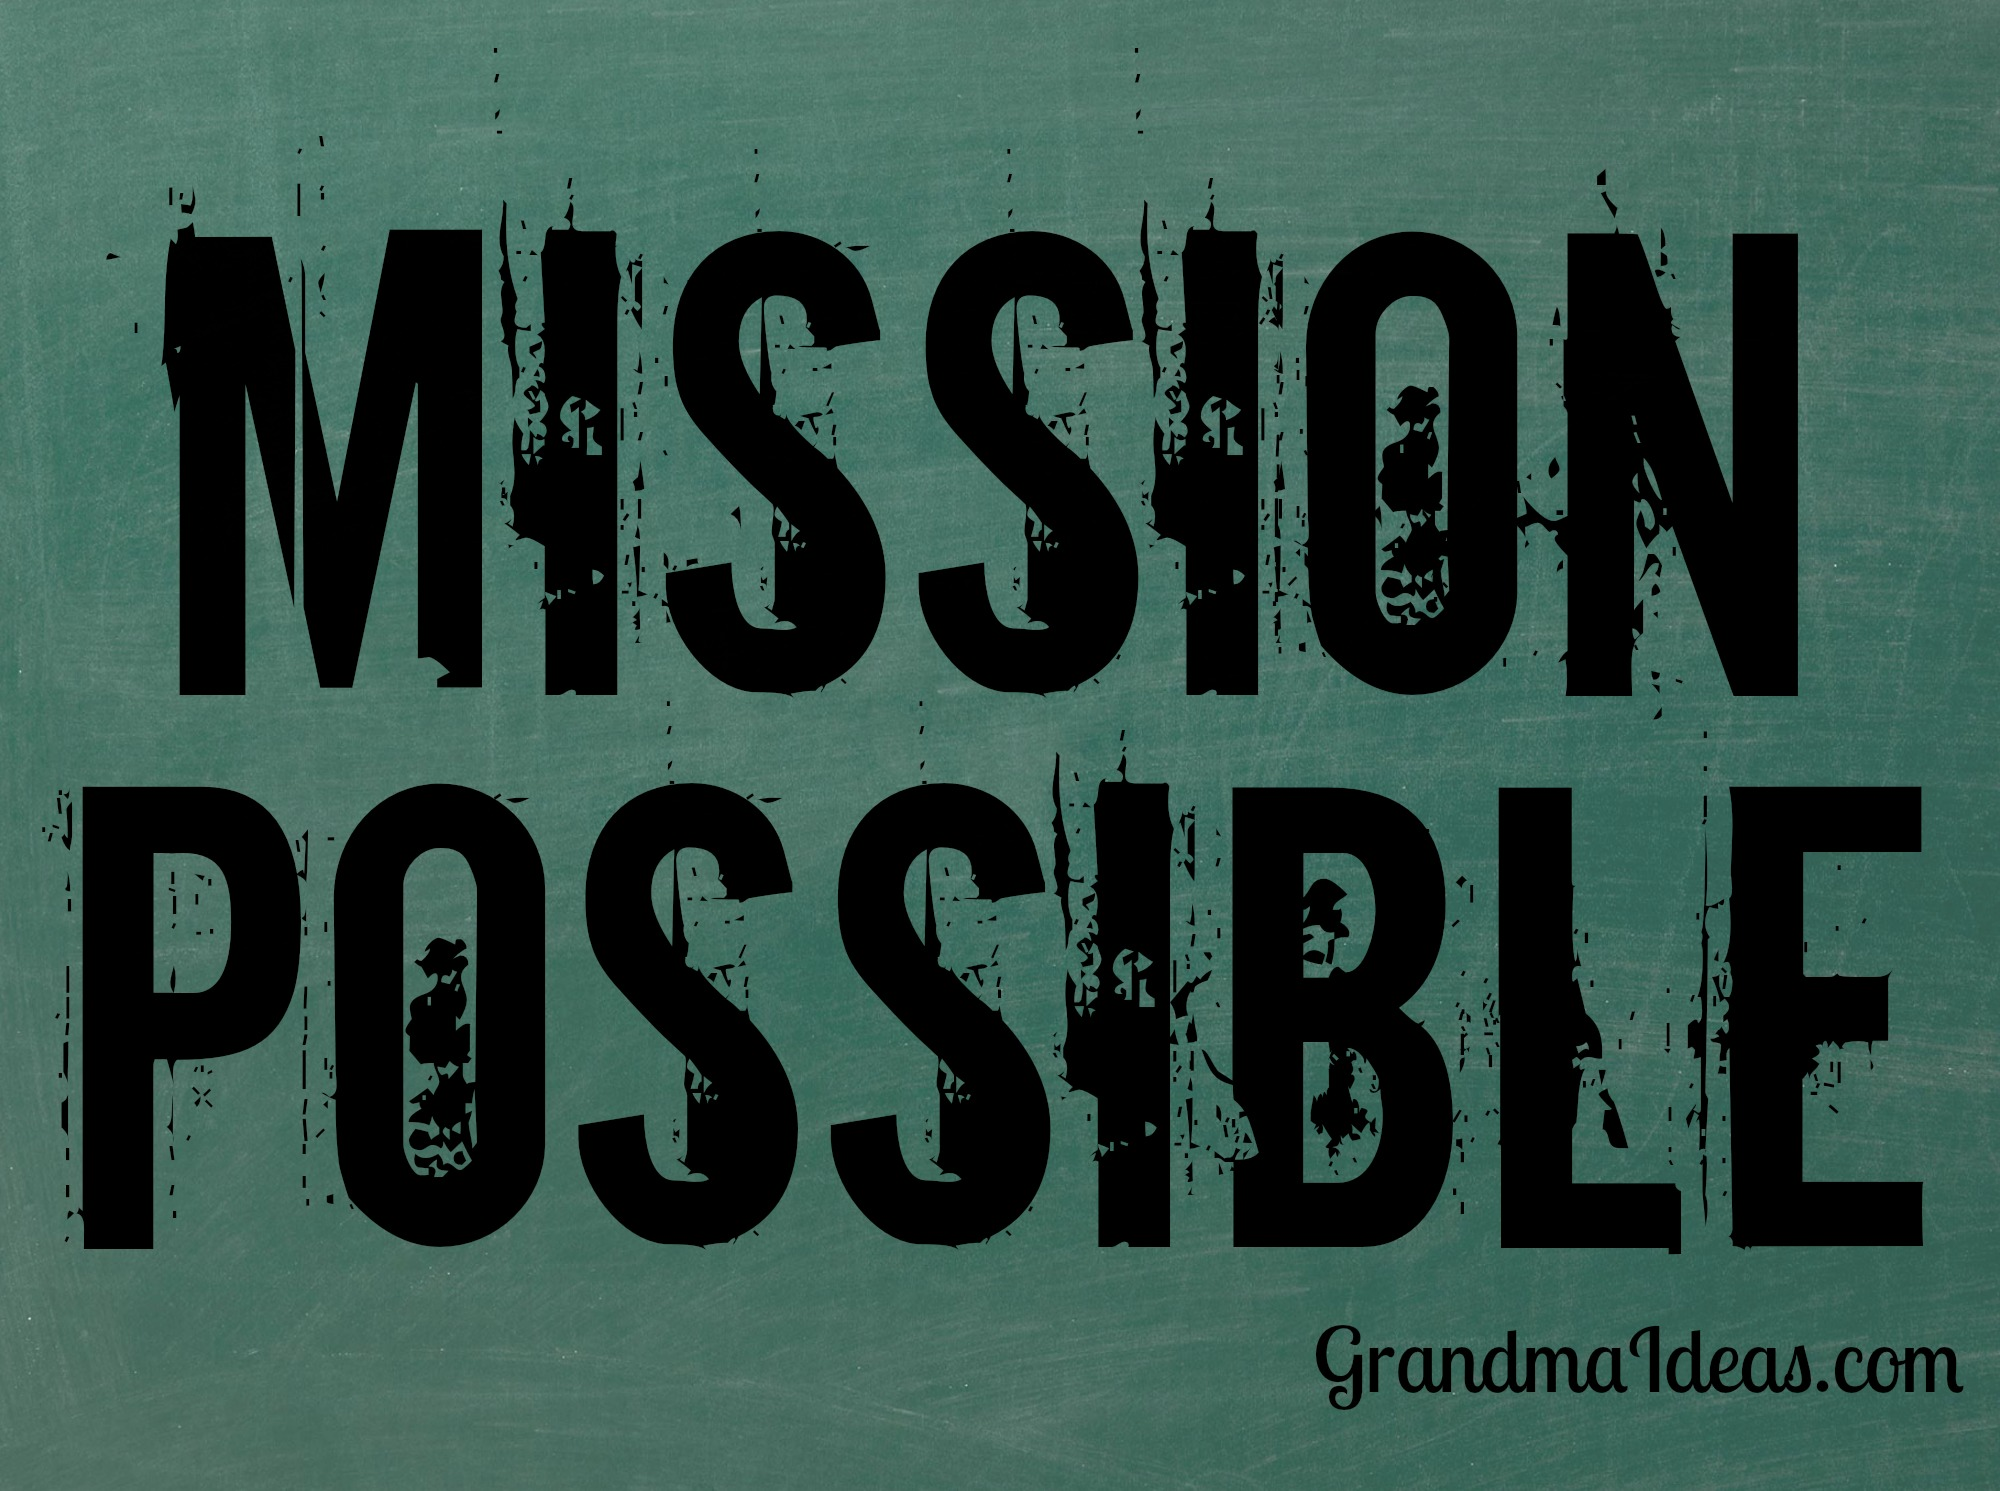 Mission Possible Grandma Ideas